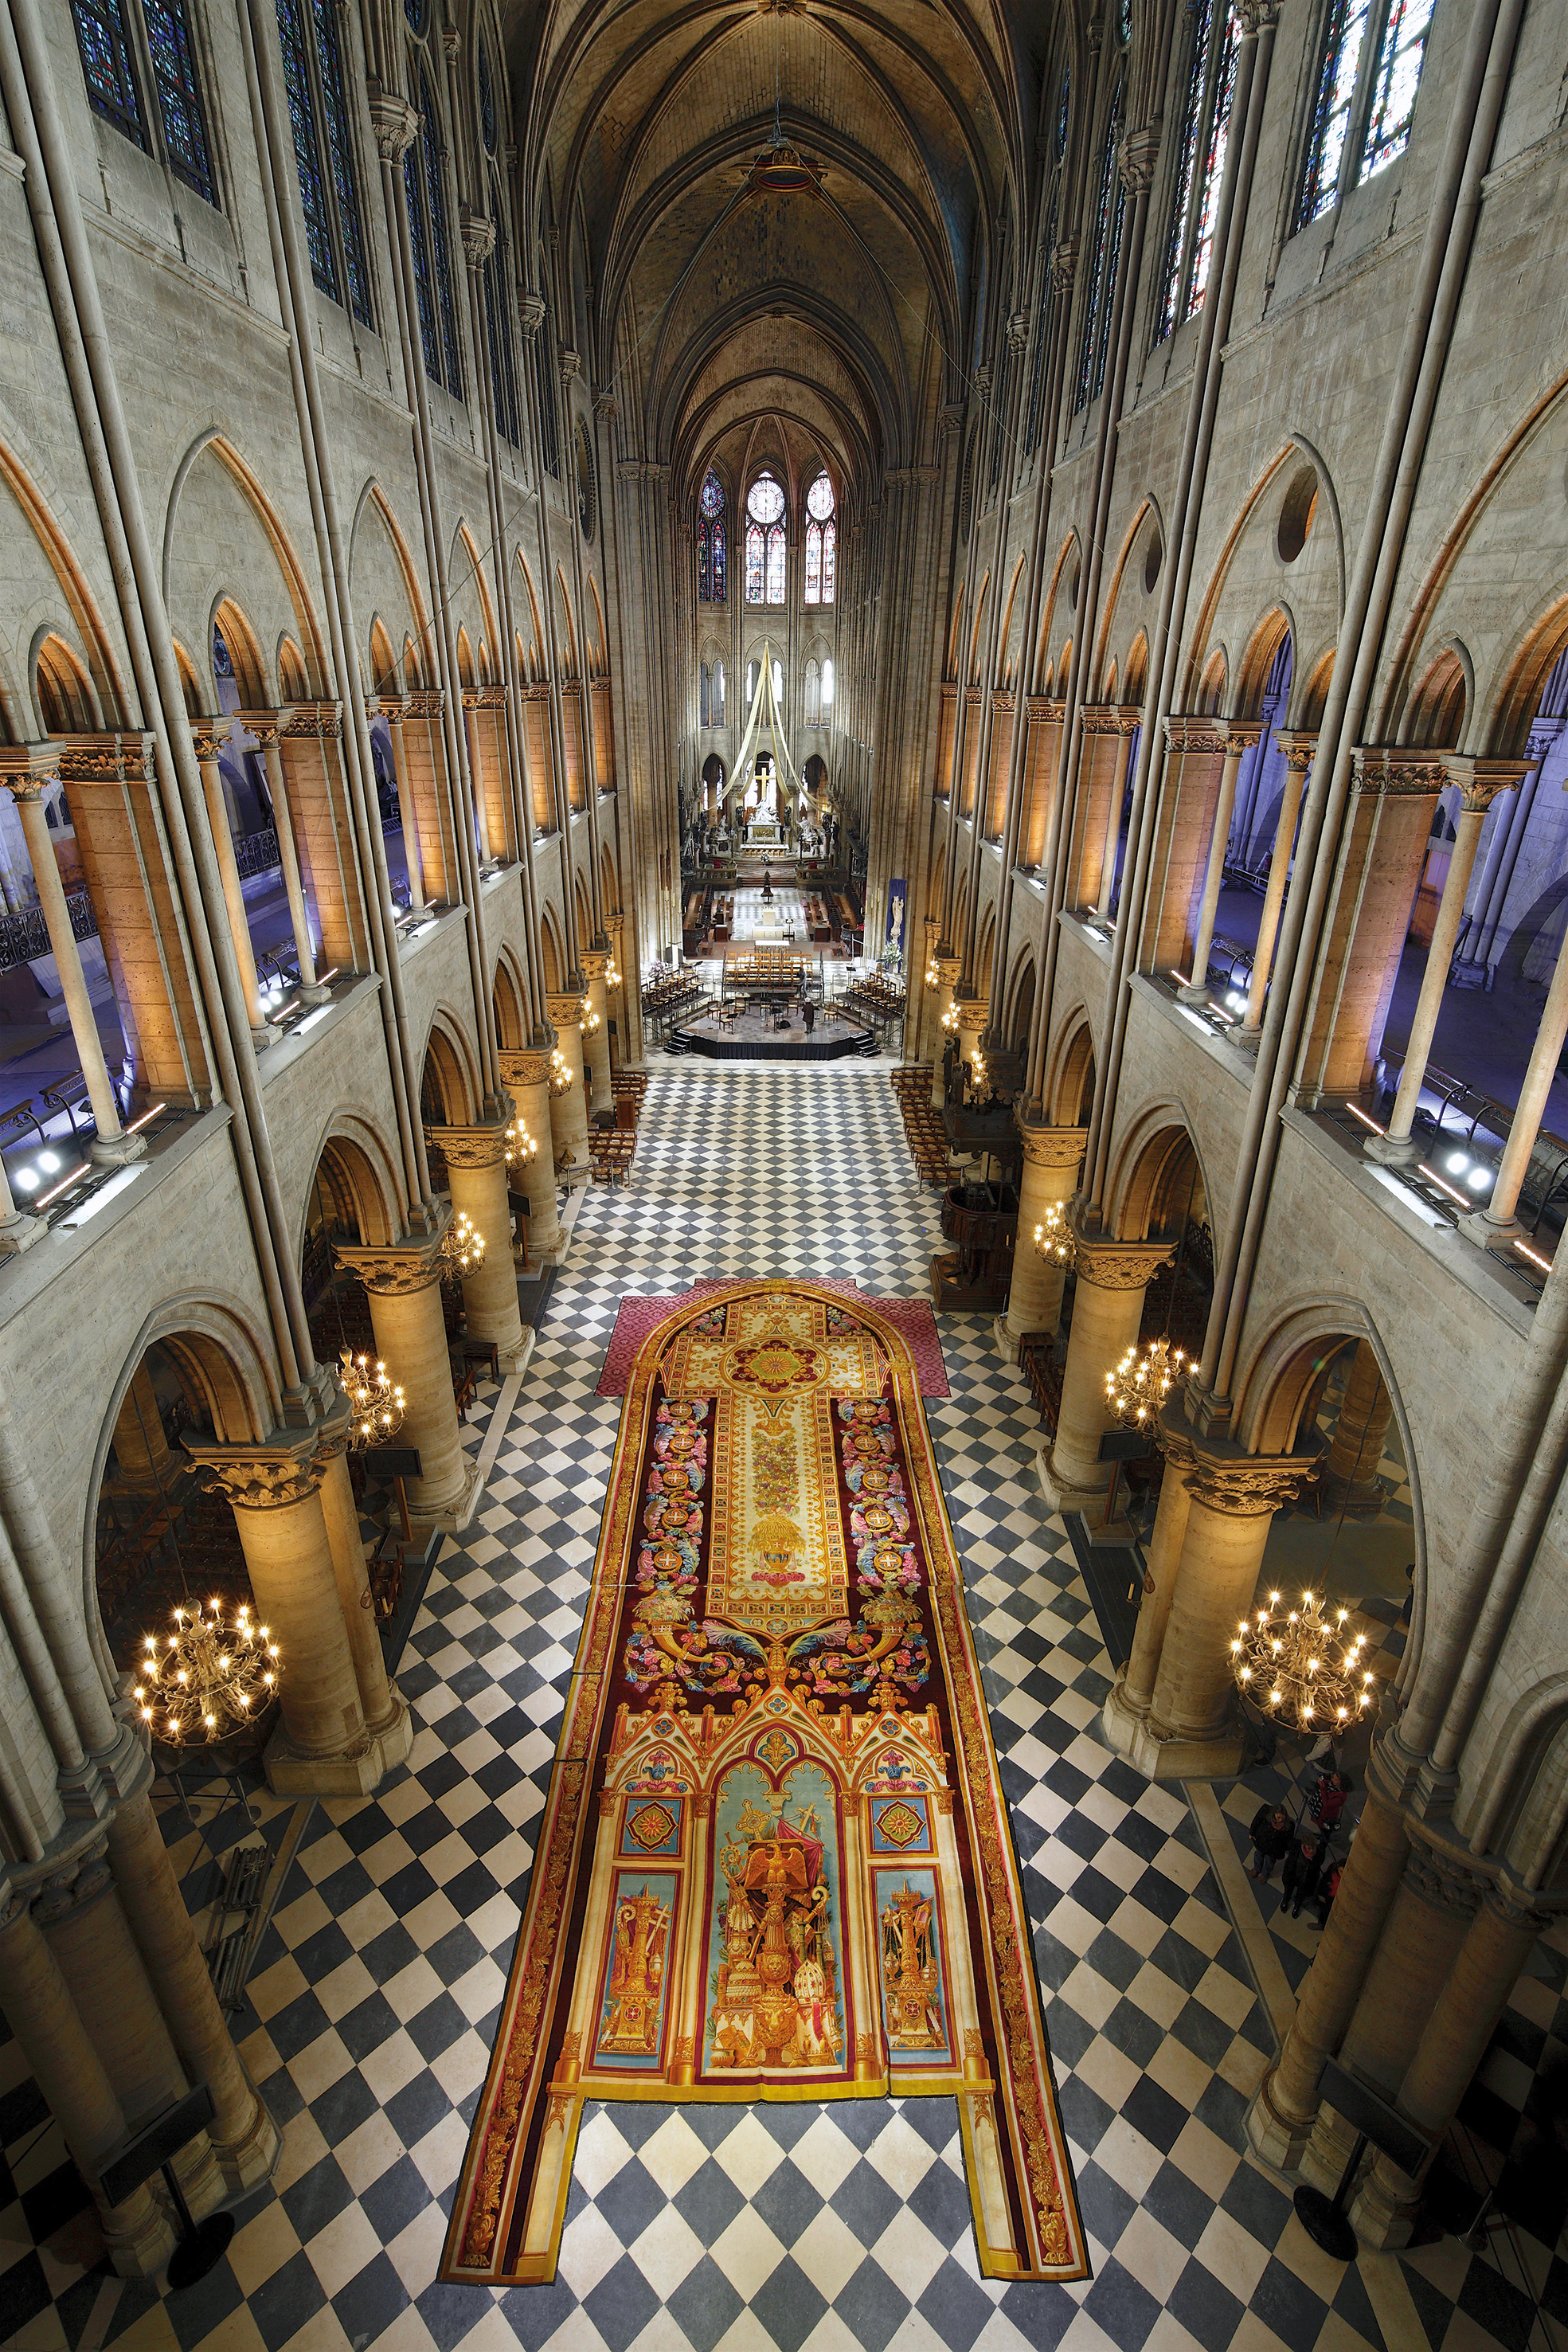 The History Blog Blog Archive Monumental Notre Dame Tapestry Saved In A Wind Tunnel